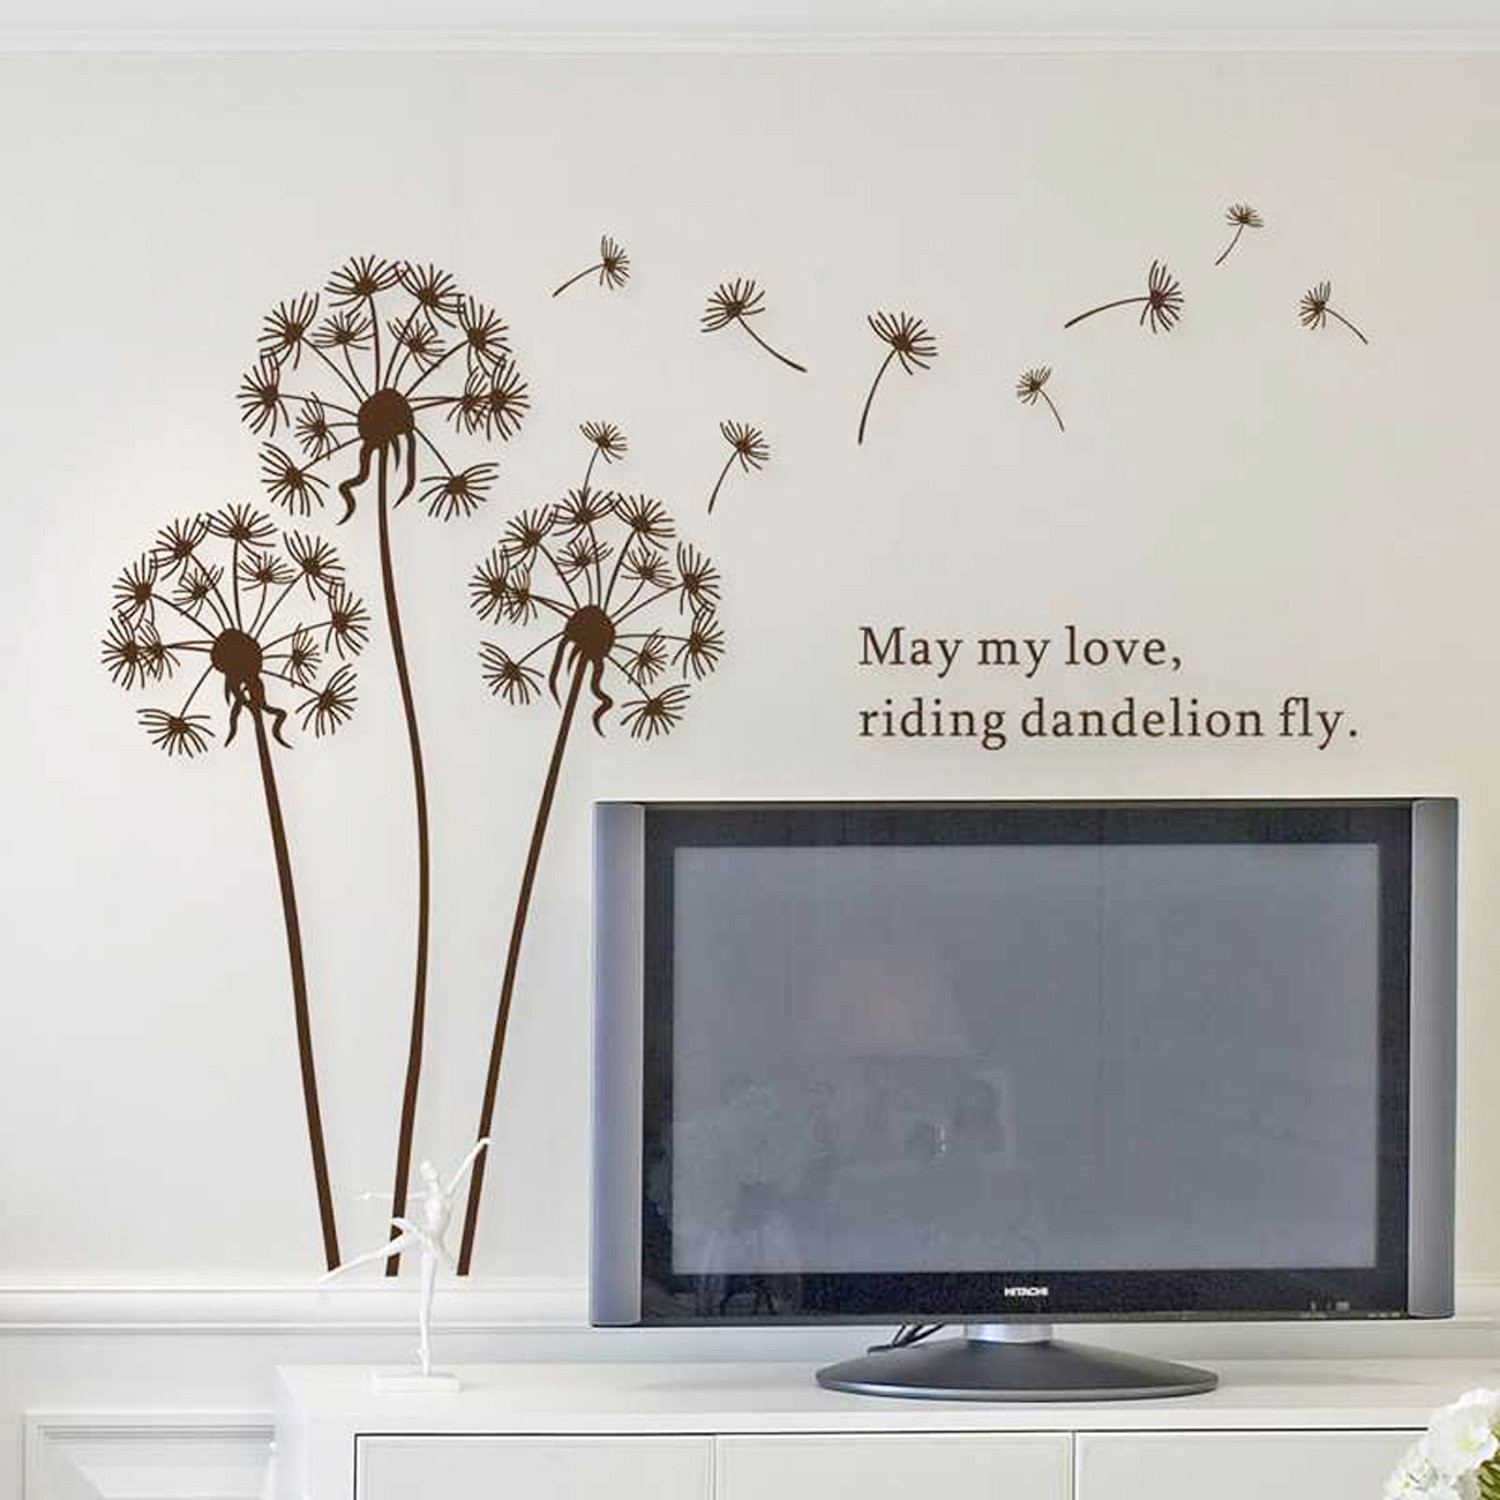 A NEW Sakura Flower Removable Wall Sticker Paper Mural Art Decal Home Room Decor by EXCITES EXCITES CO. LTD FMISSACGHJH282